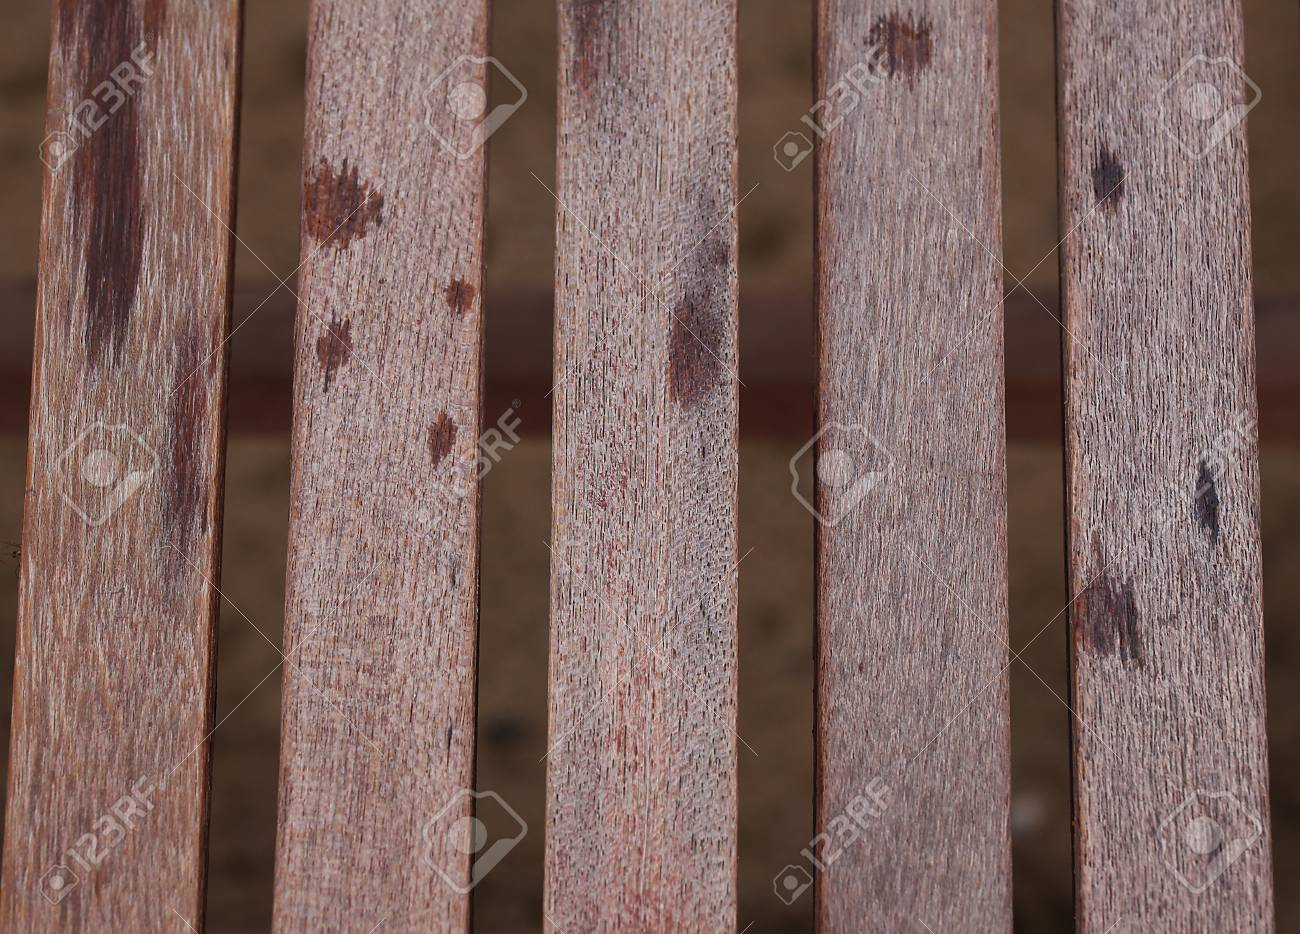 Old wooden slats with peeling paint.Background texture. - 80321248